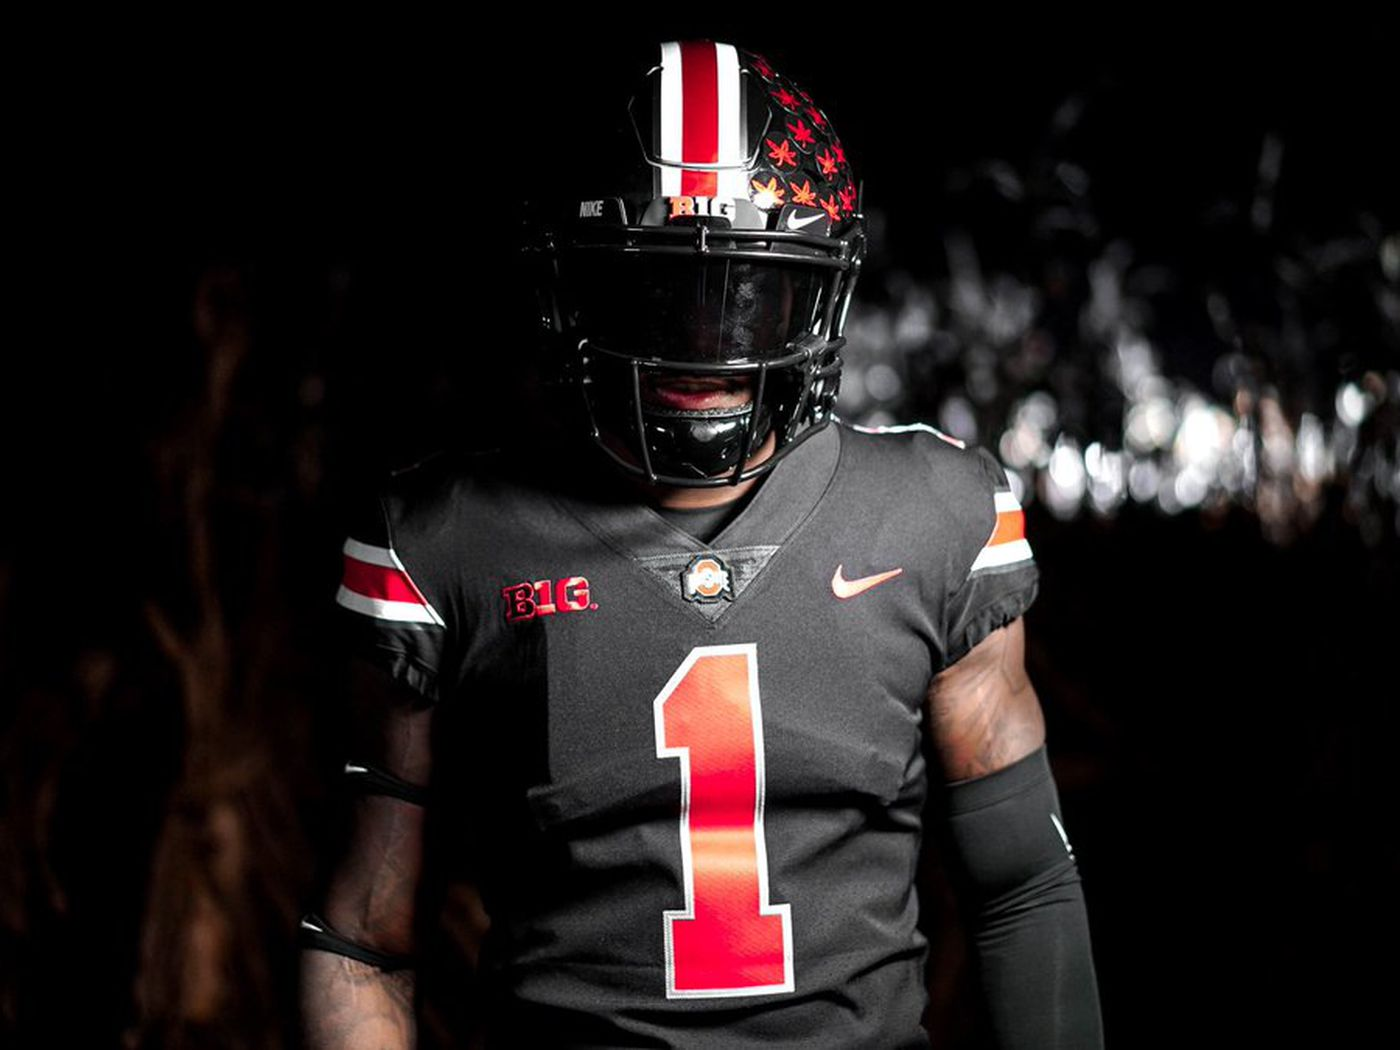 Ohio State Will Wear Black Uniforms For Noon Game Against Nebraska Land Grant Holy Land